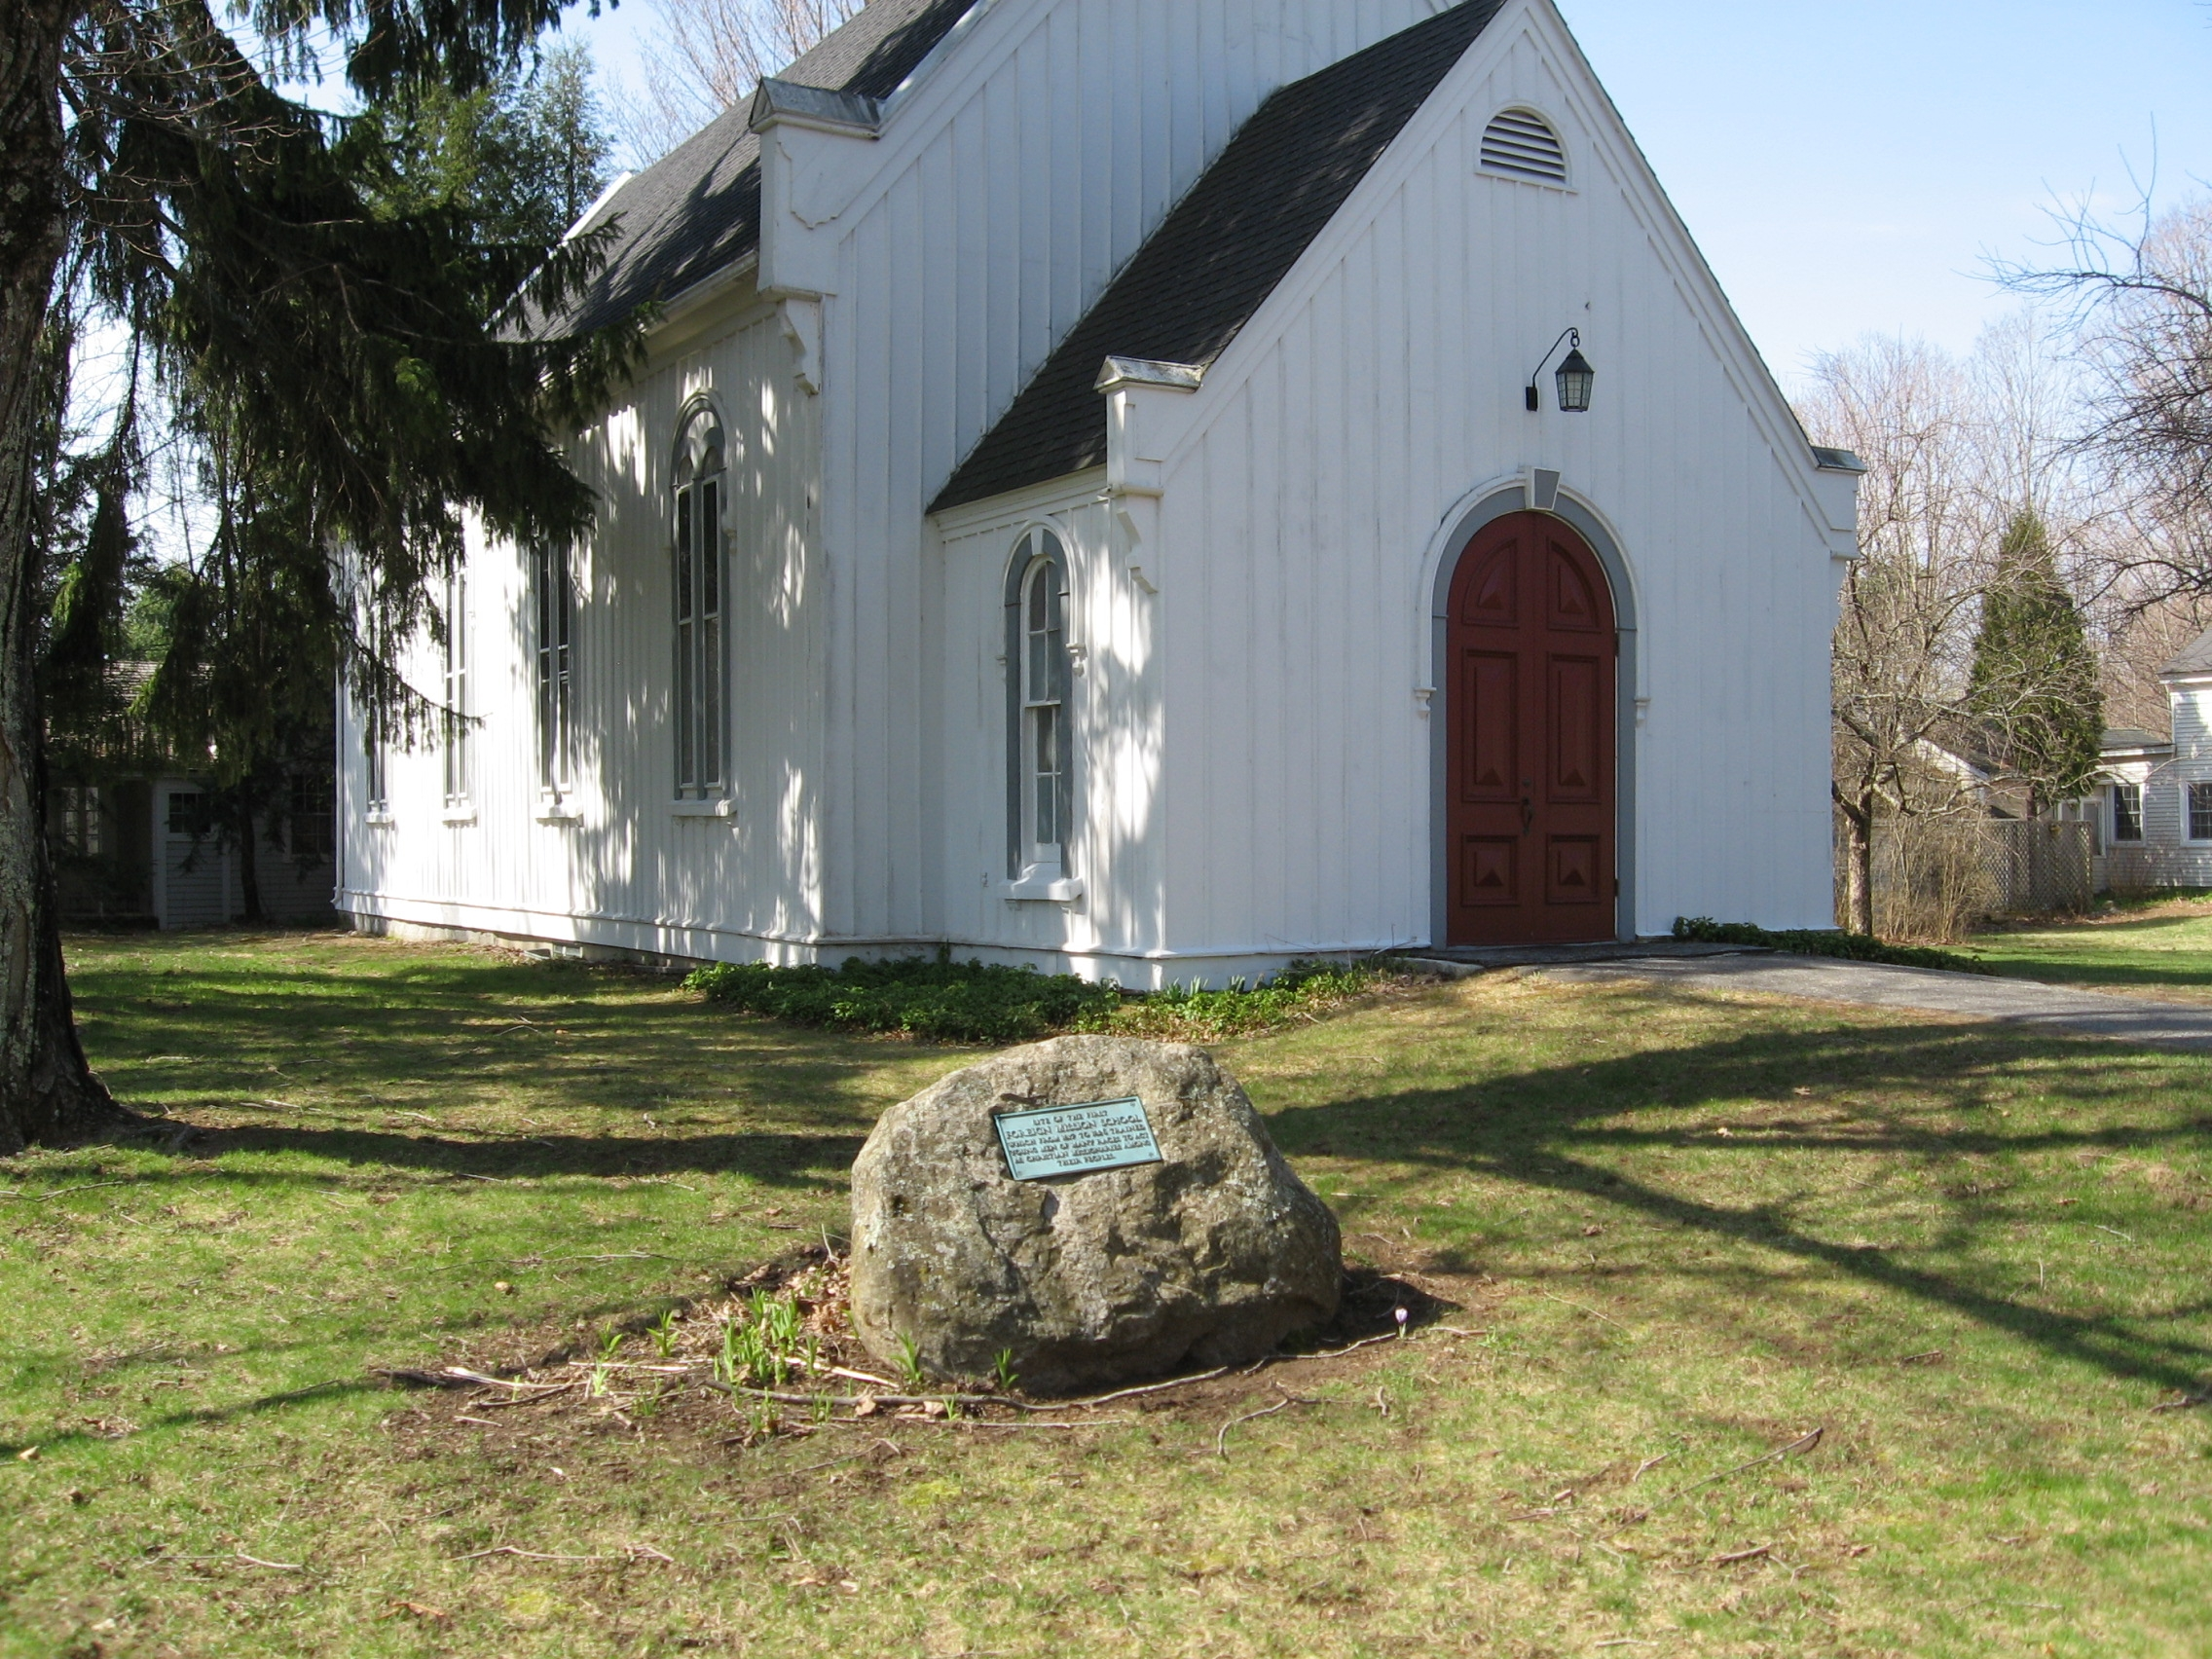 The site of the former school is designated by a small plaque on a rock outside of St. Peter's Lutheran Church. Photo by Michael Herrick, full photo credit below.